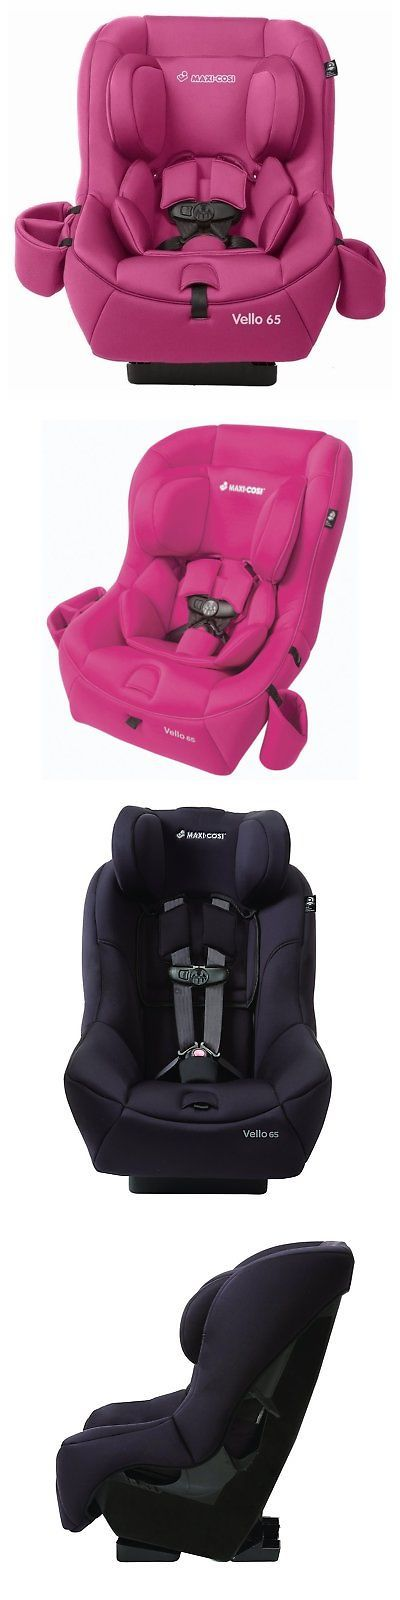 Maxi Cosi Vello 65 Baby Infant To Toddler Easy Clean Convertible Car Seat Pink